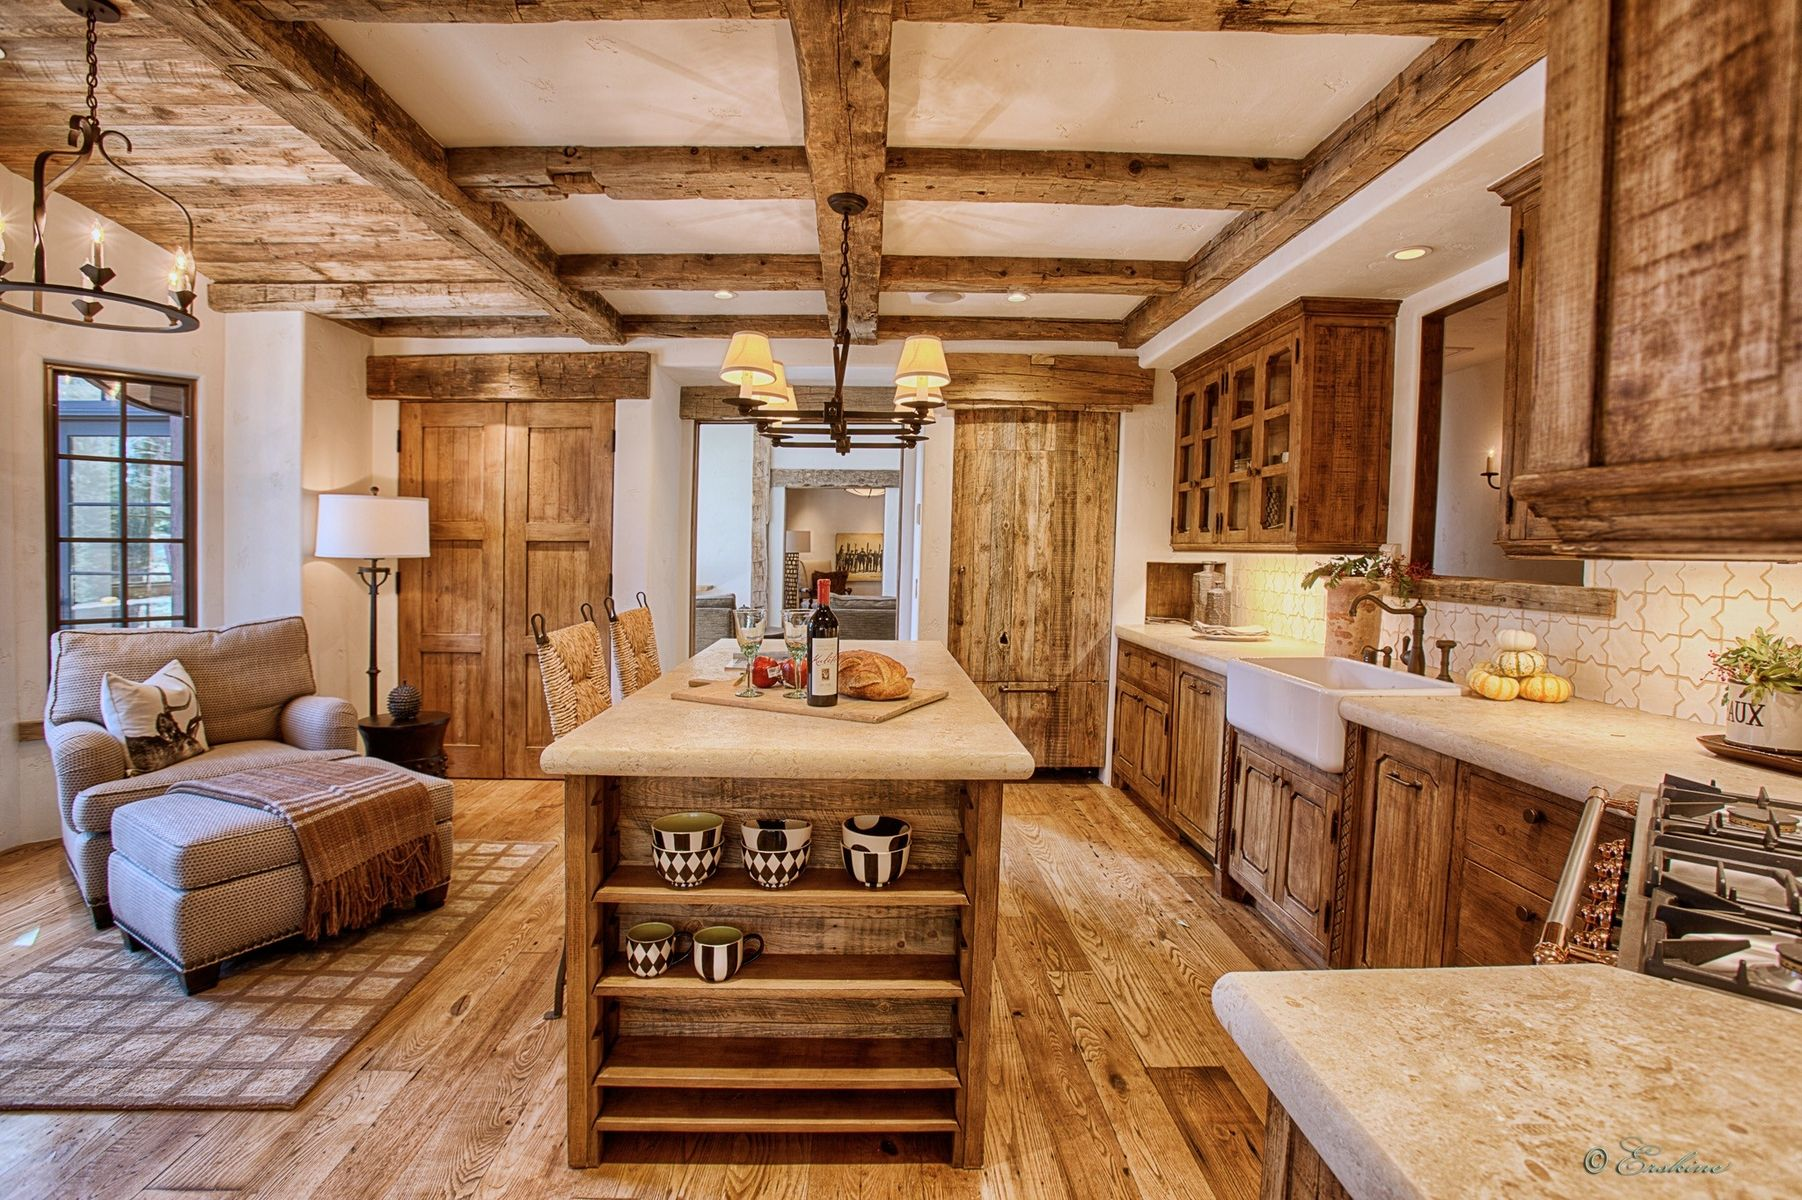 Adding wood beams to your ceiling provides a lot of warps for your kitchen. When you're remodeling your kitchen it might be a good idea to add island countertop with seating to help maximize space.